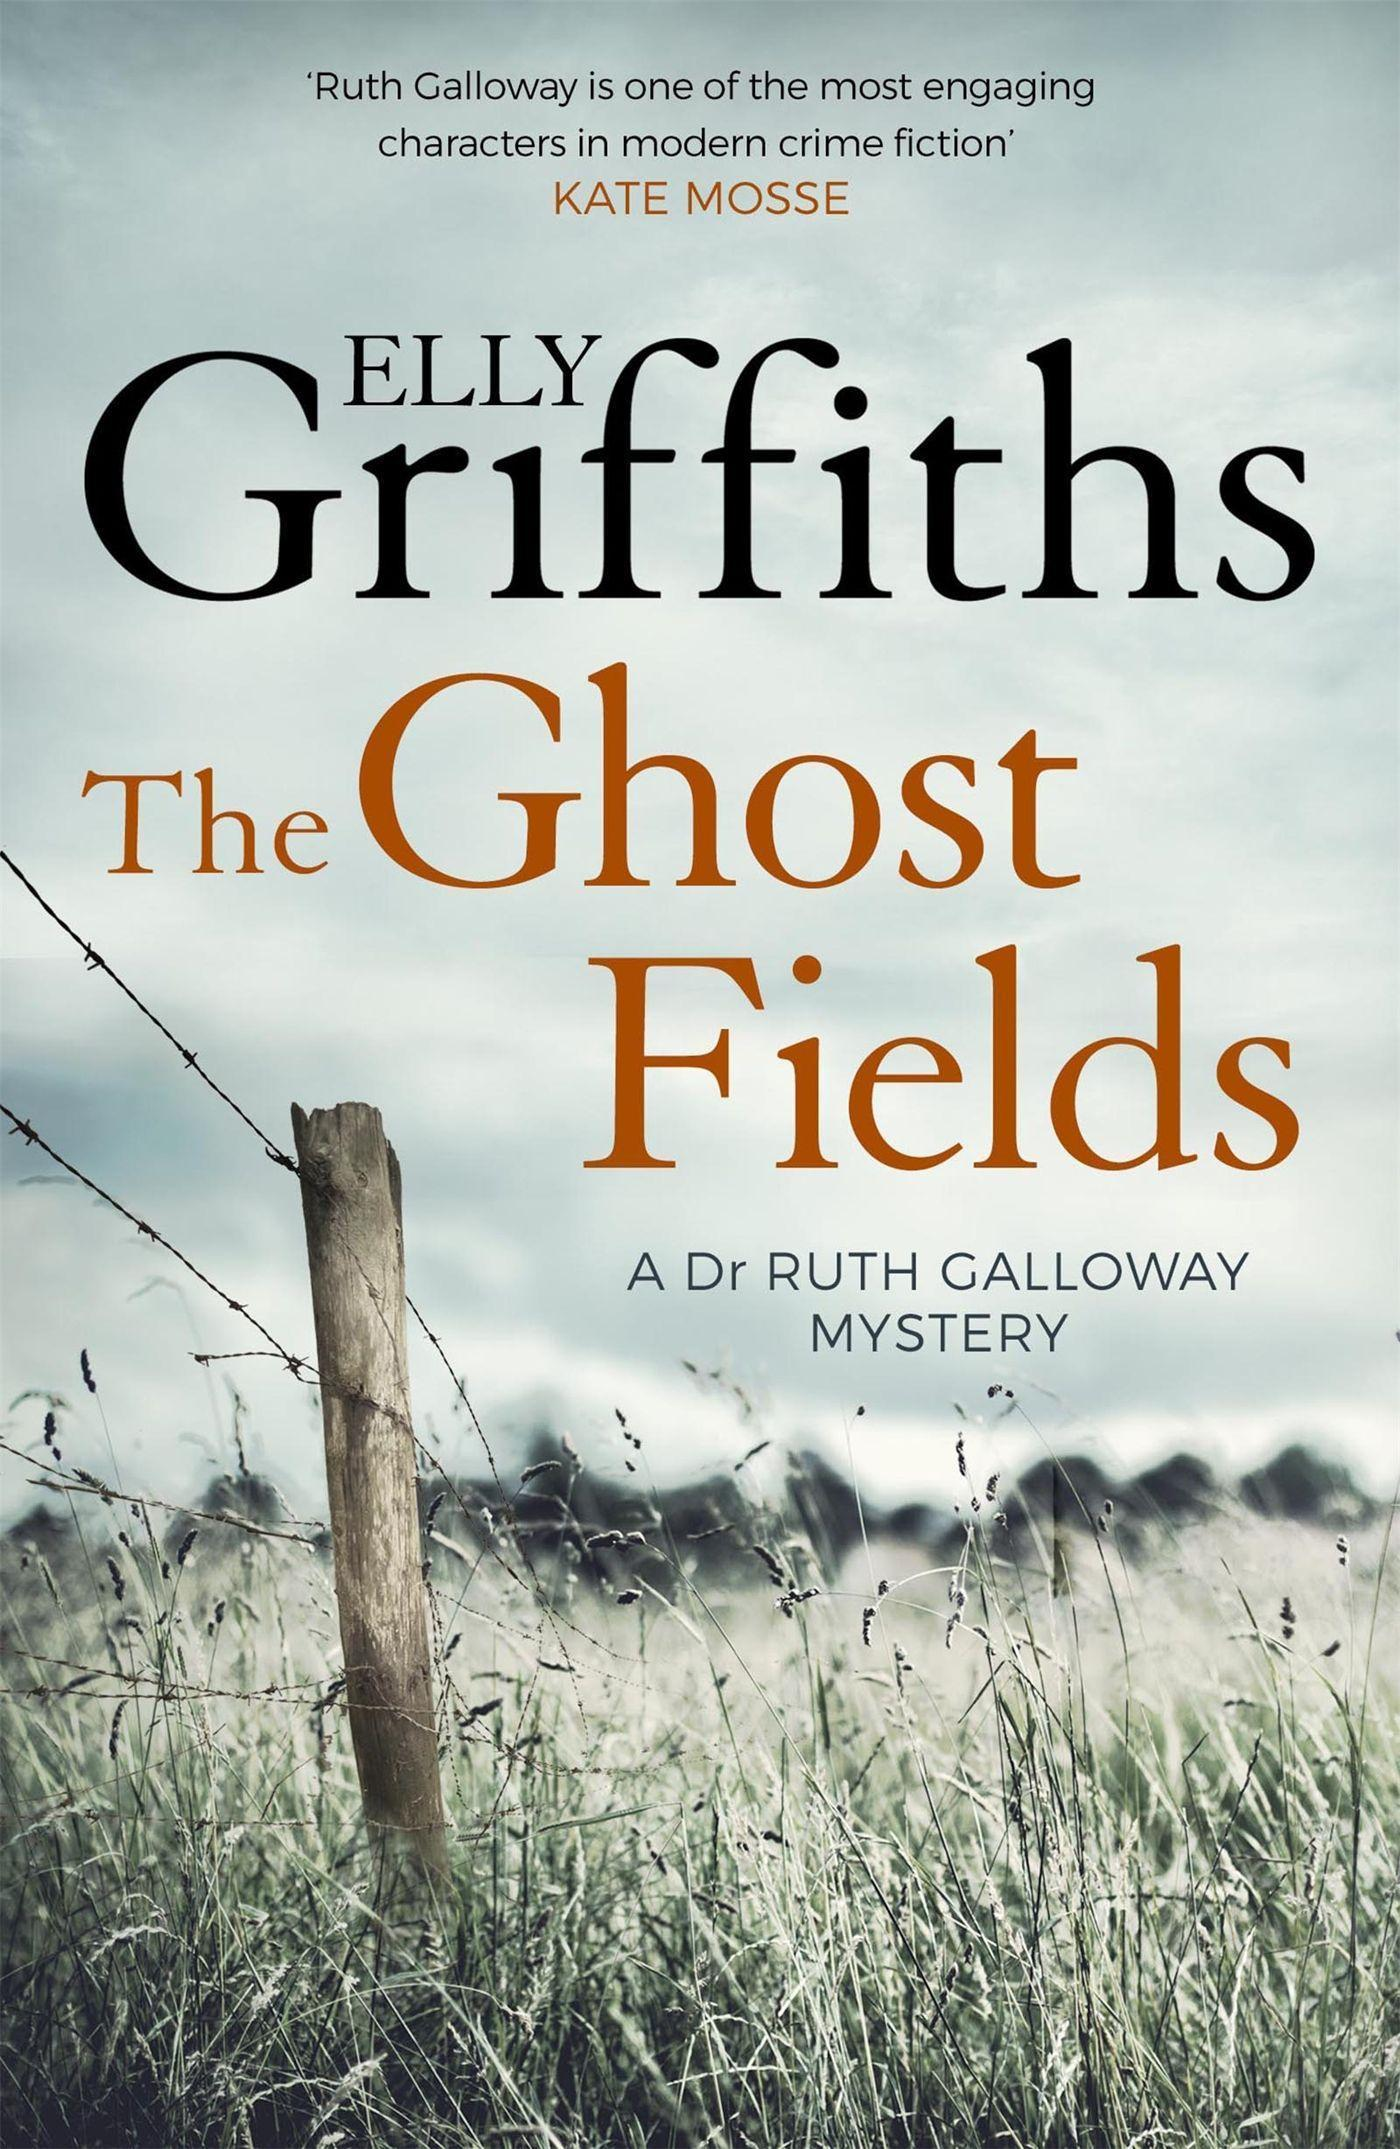 The-Ghost-Fields-Elly-Griffiths-9781786482174